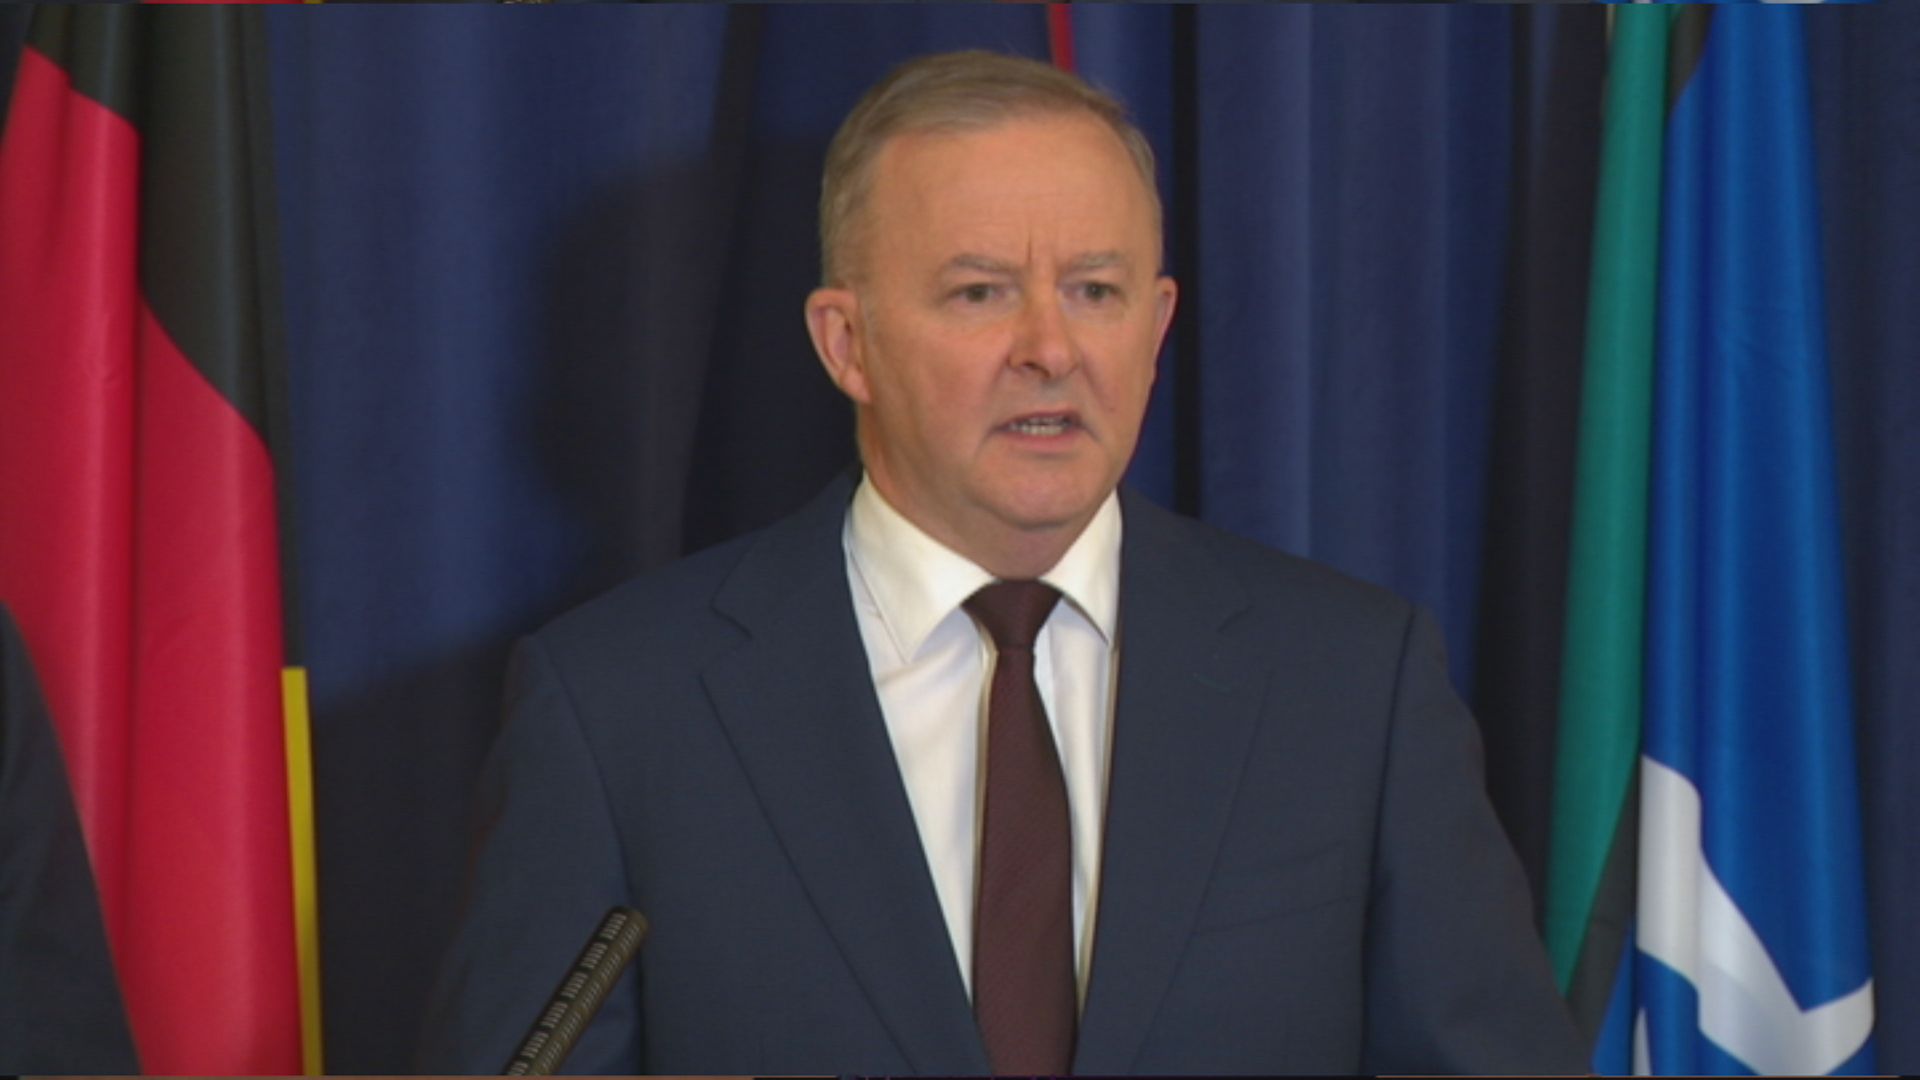 Labor Leader Anthony Albanese announcing his Cabinet reshuffle today.